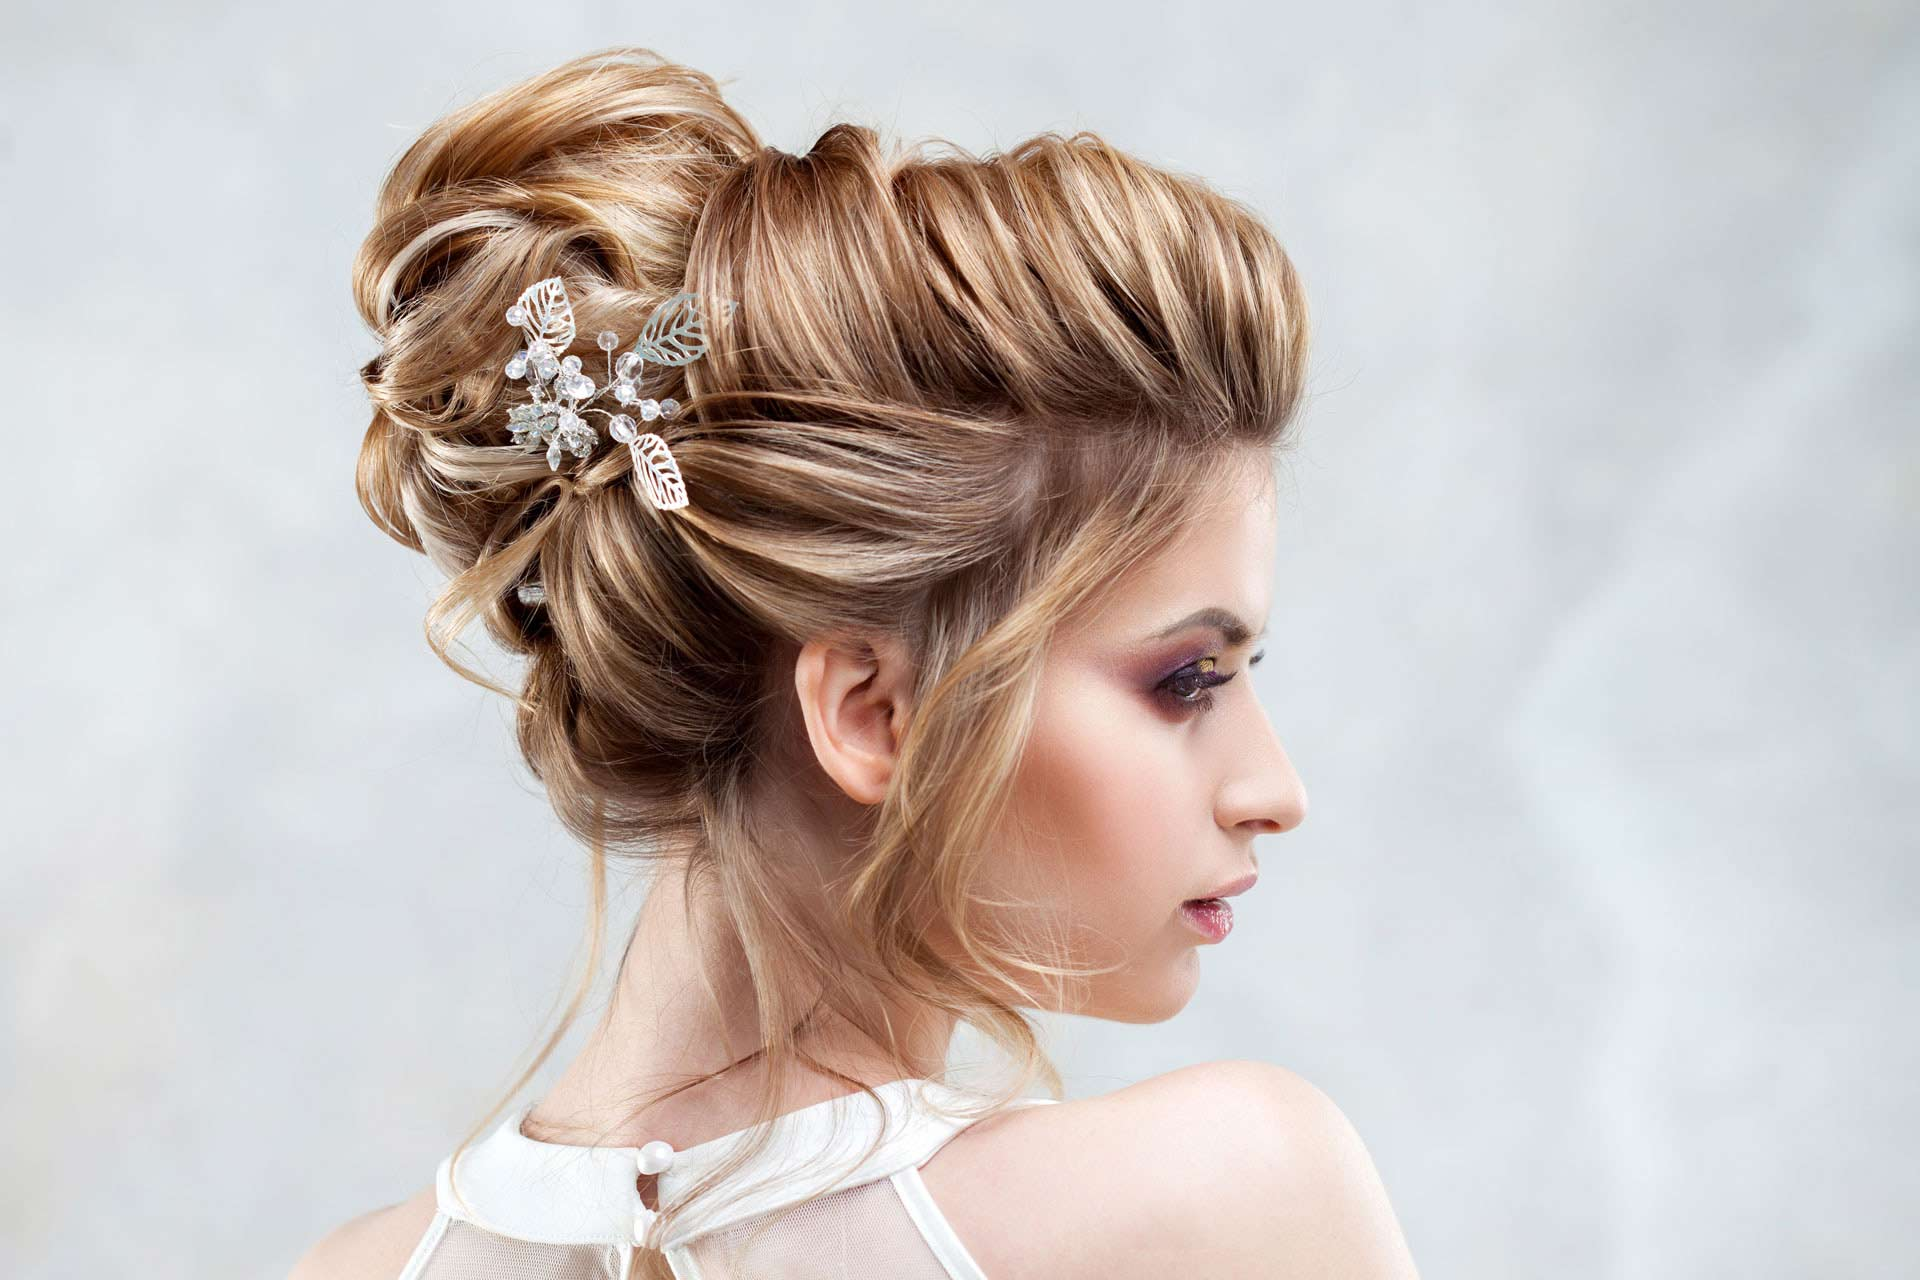 Best Bridal Hair & Makeup Salon in Orlando, Fl